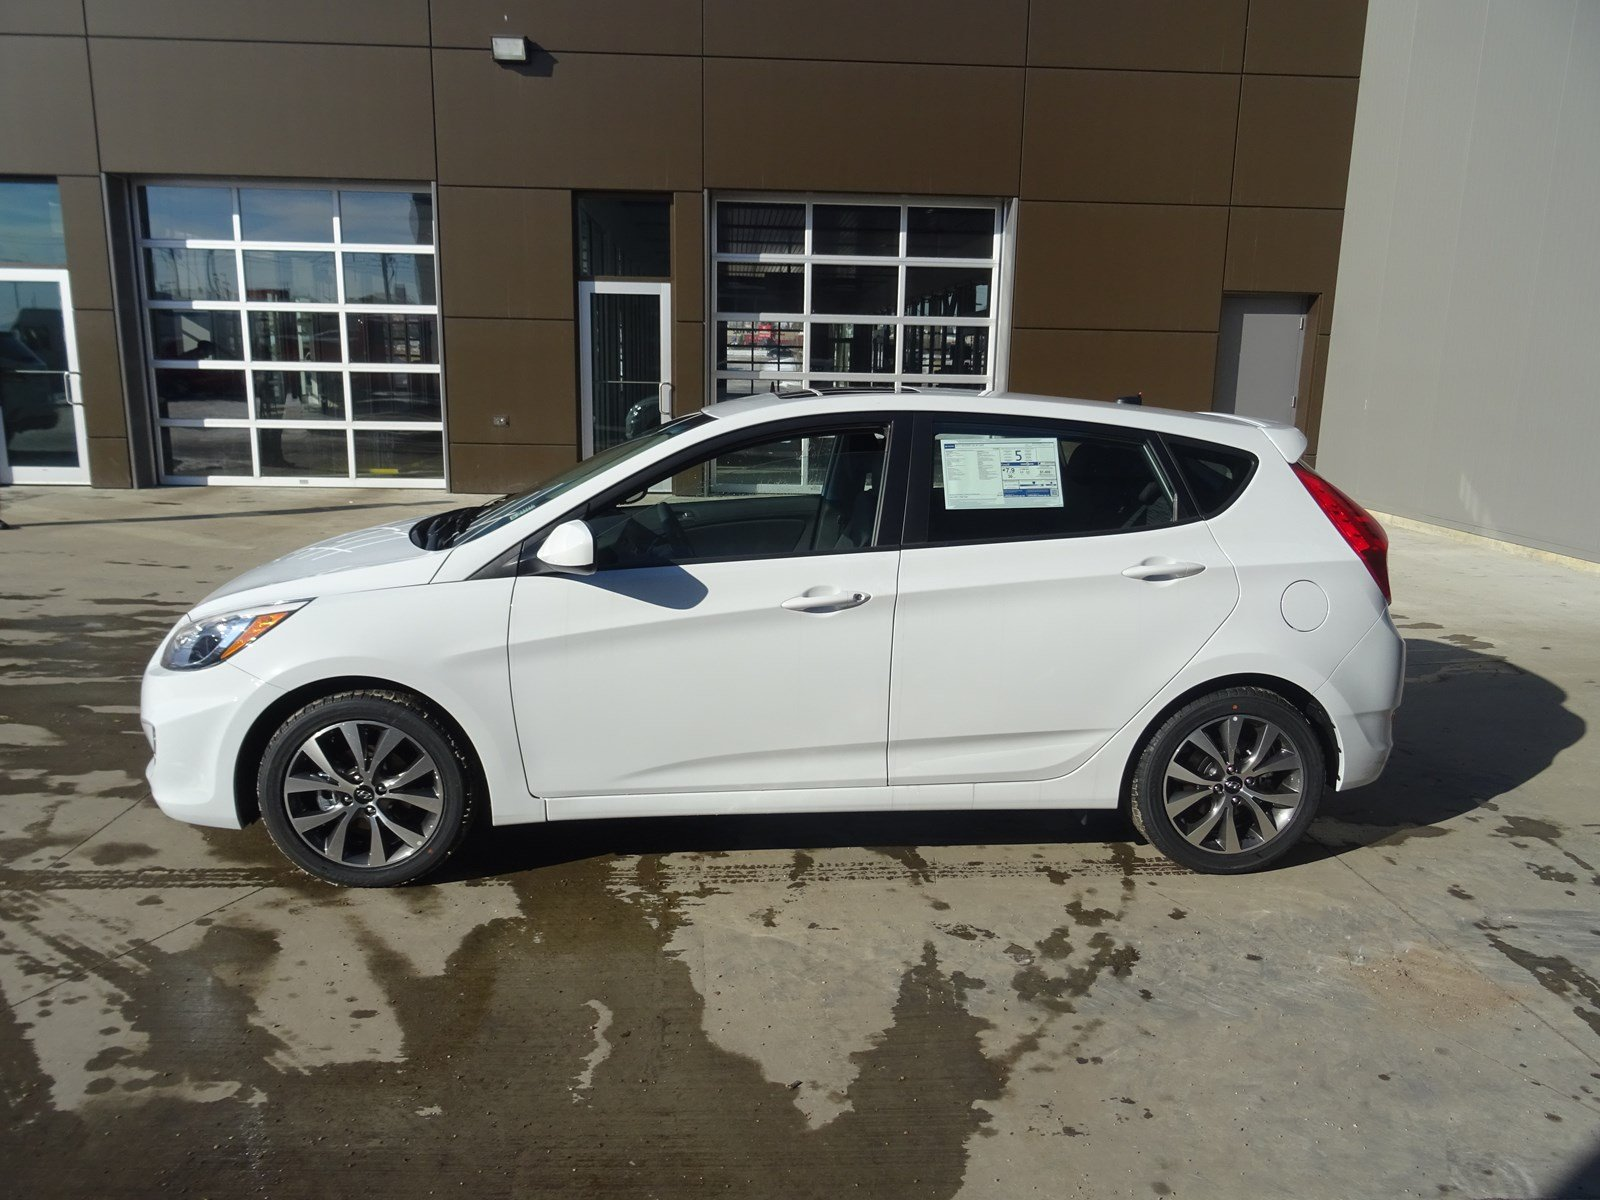 New 2017 Hyundai Accent Hatchback in Edmonton HAC0833